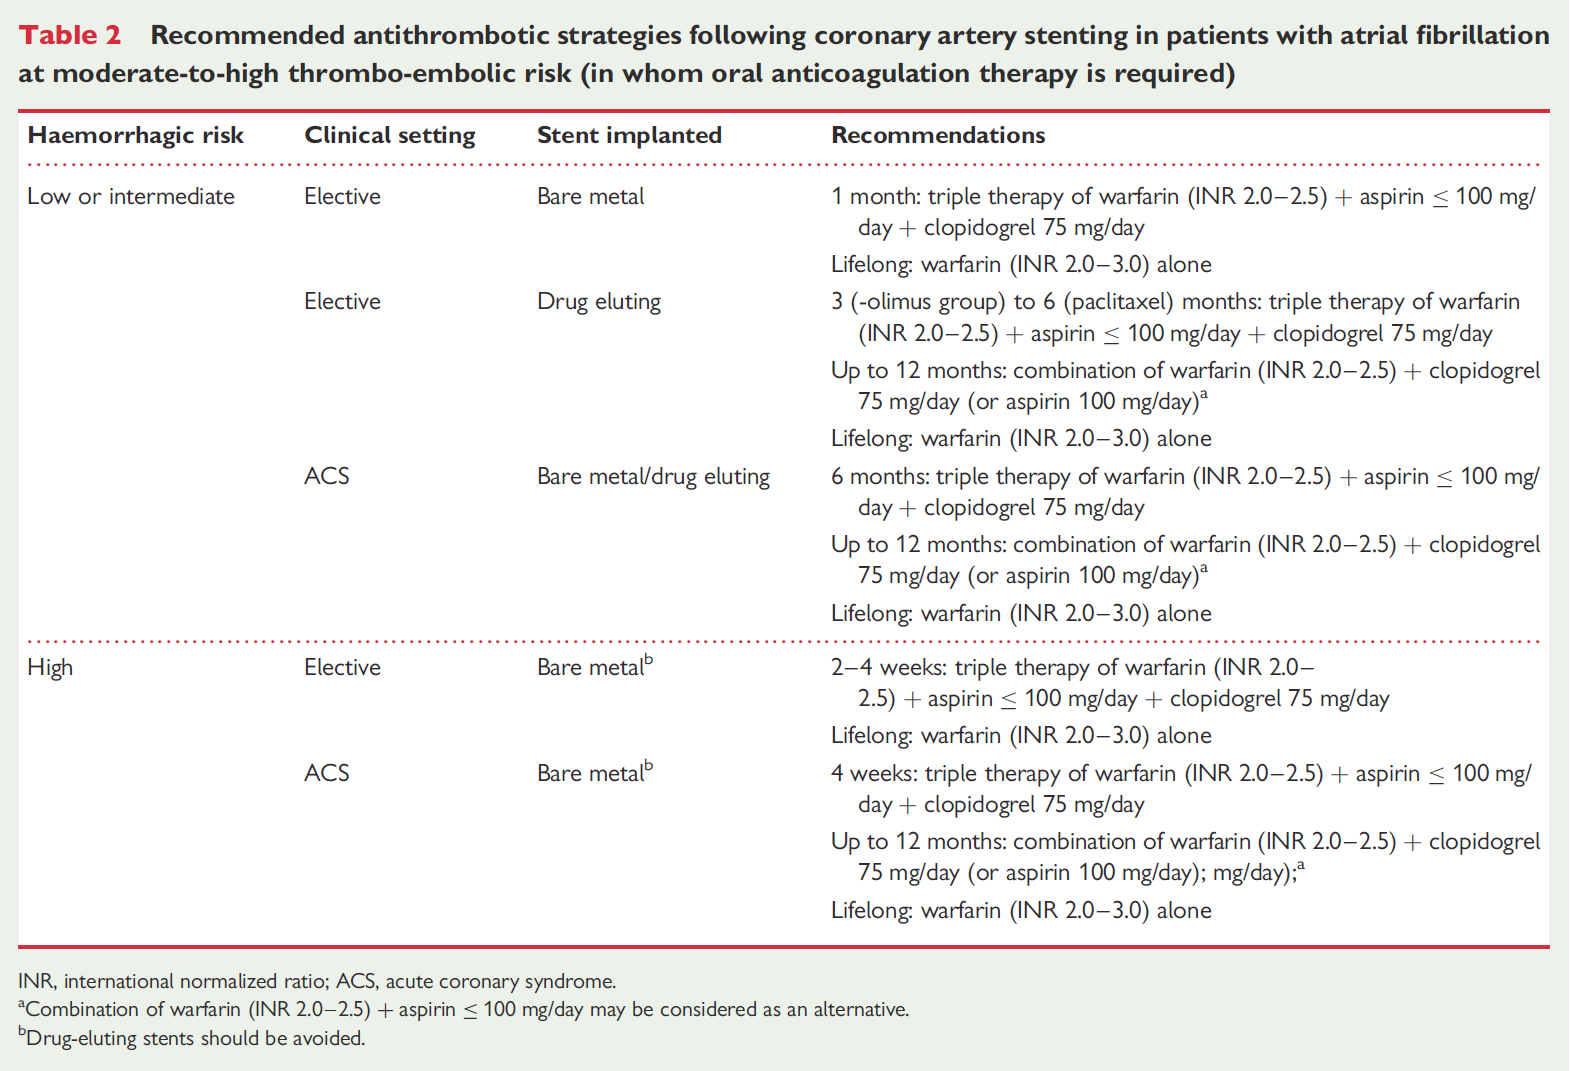 Antithrombotic management of atrial fibrillation patients presenting with acute coronary syndrome and/or undergoing coronary stenting: executive summary a Consensus Document of the European Society